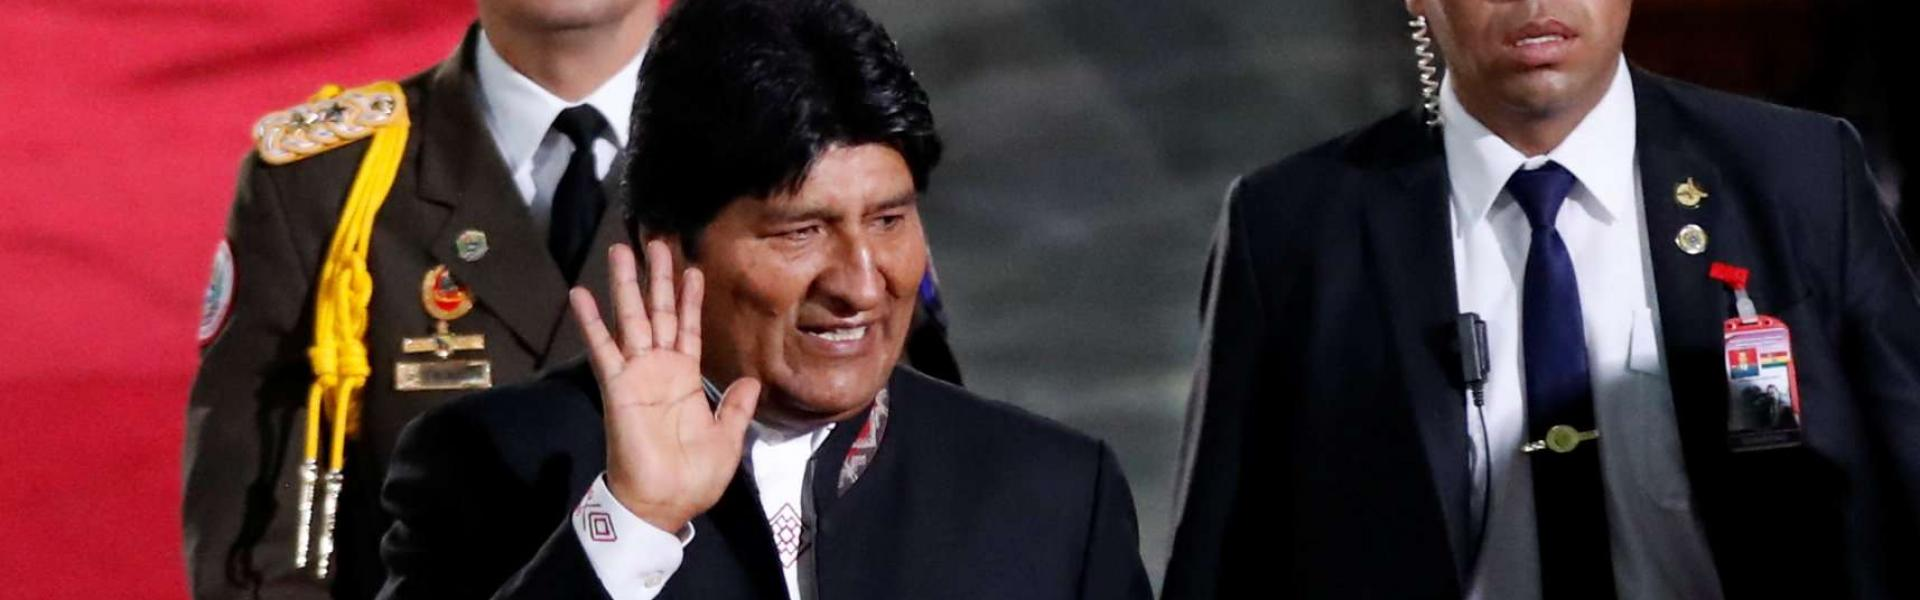 Bolivia's President Evo Morales arrives prior to Venezuelan President Nicolas Maduro's ceremonial swearing-in for his second presidential term, at the Supreme Court in Caracas, Venezuela January 10, 2019. REUTERS/Carlos Garcia Rawlins